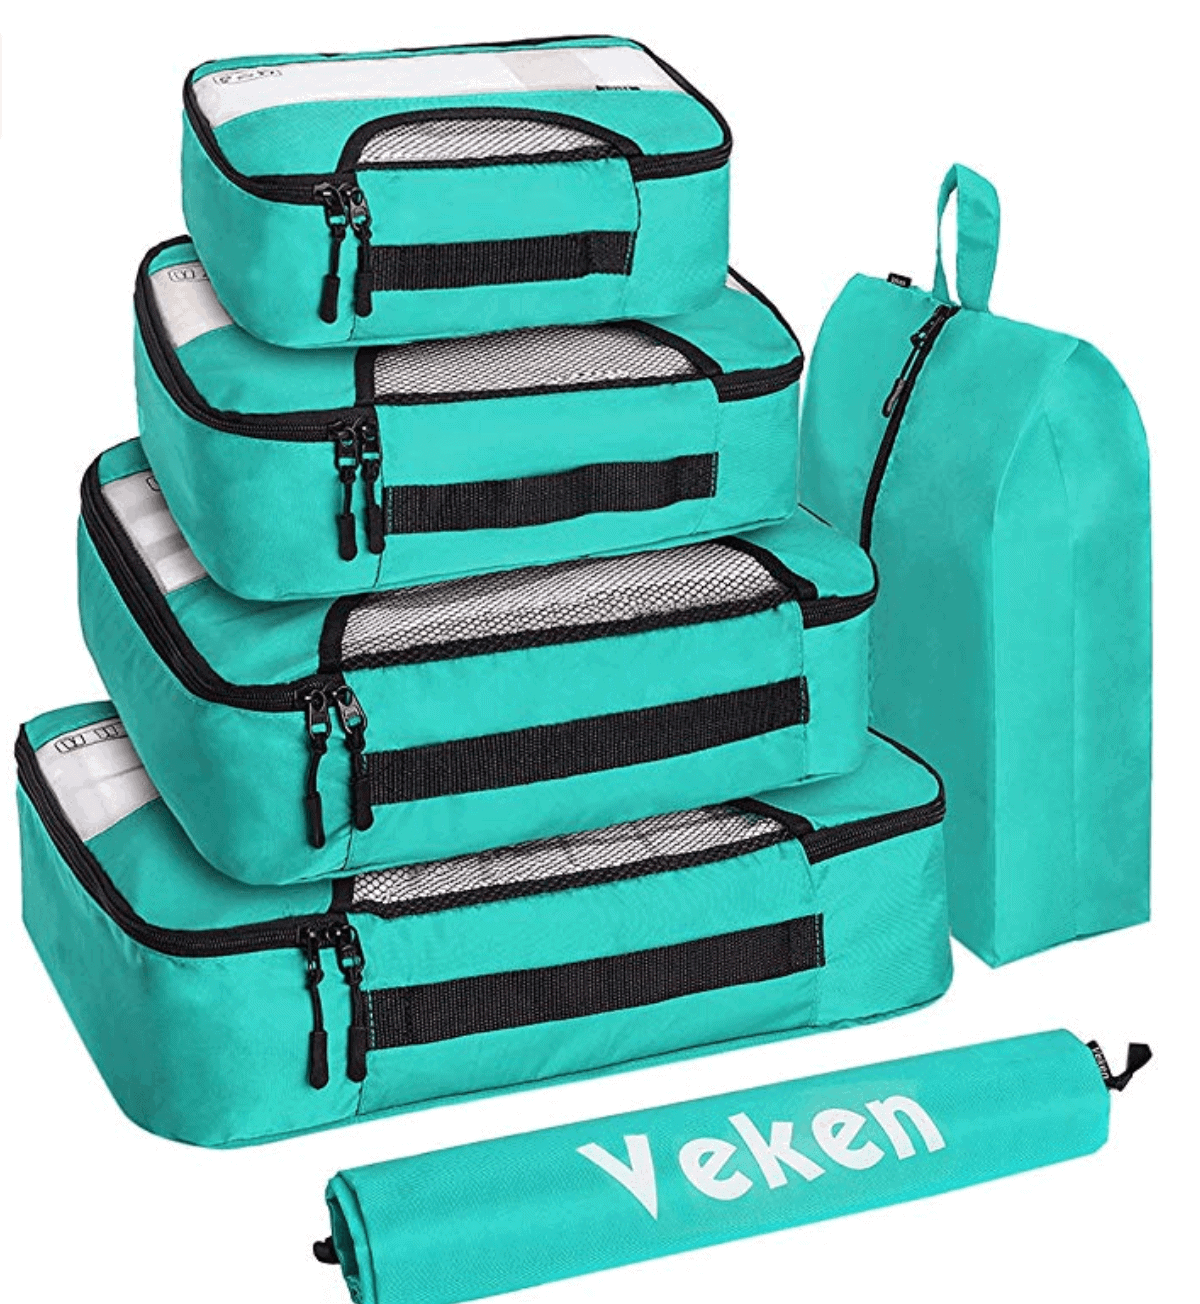 Colorful packing cubes - Best travel gift ideas under $50